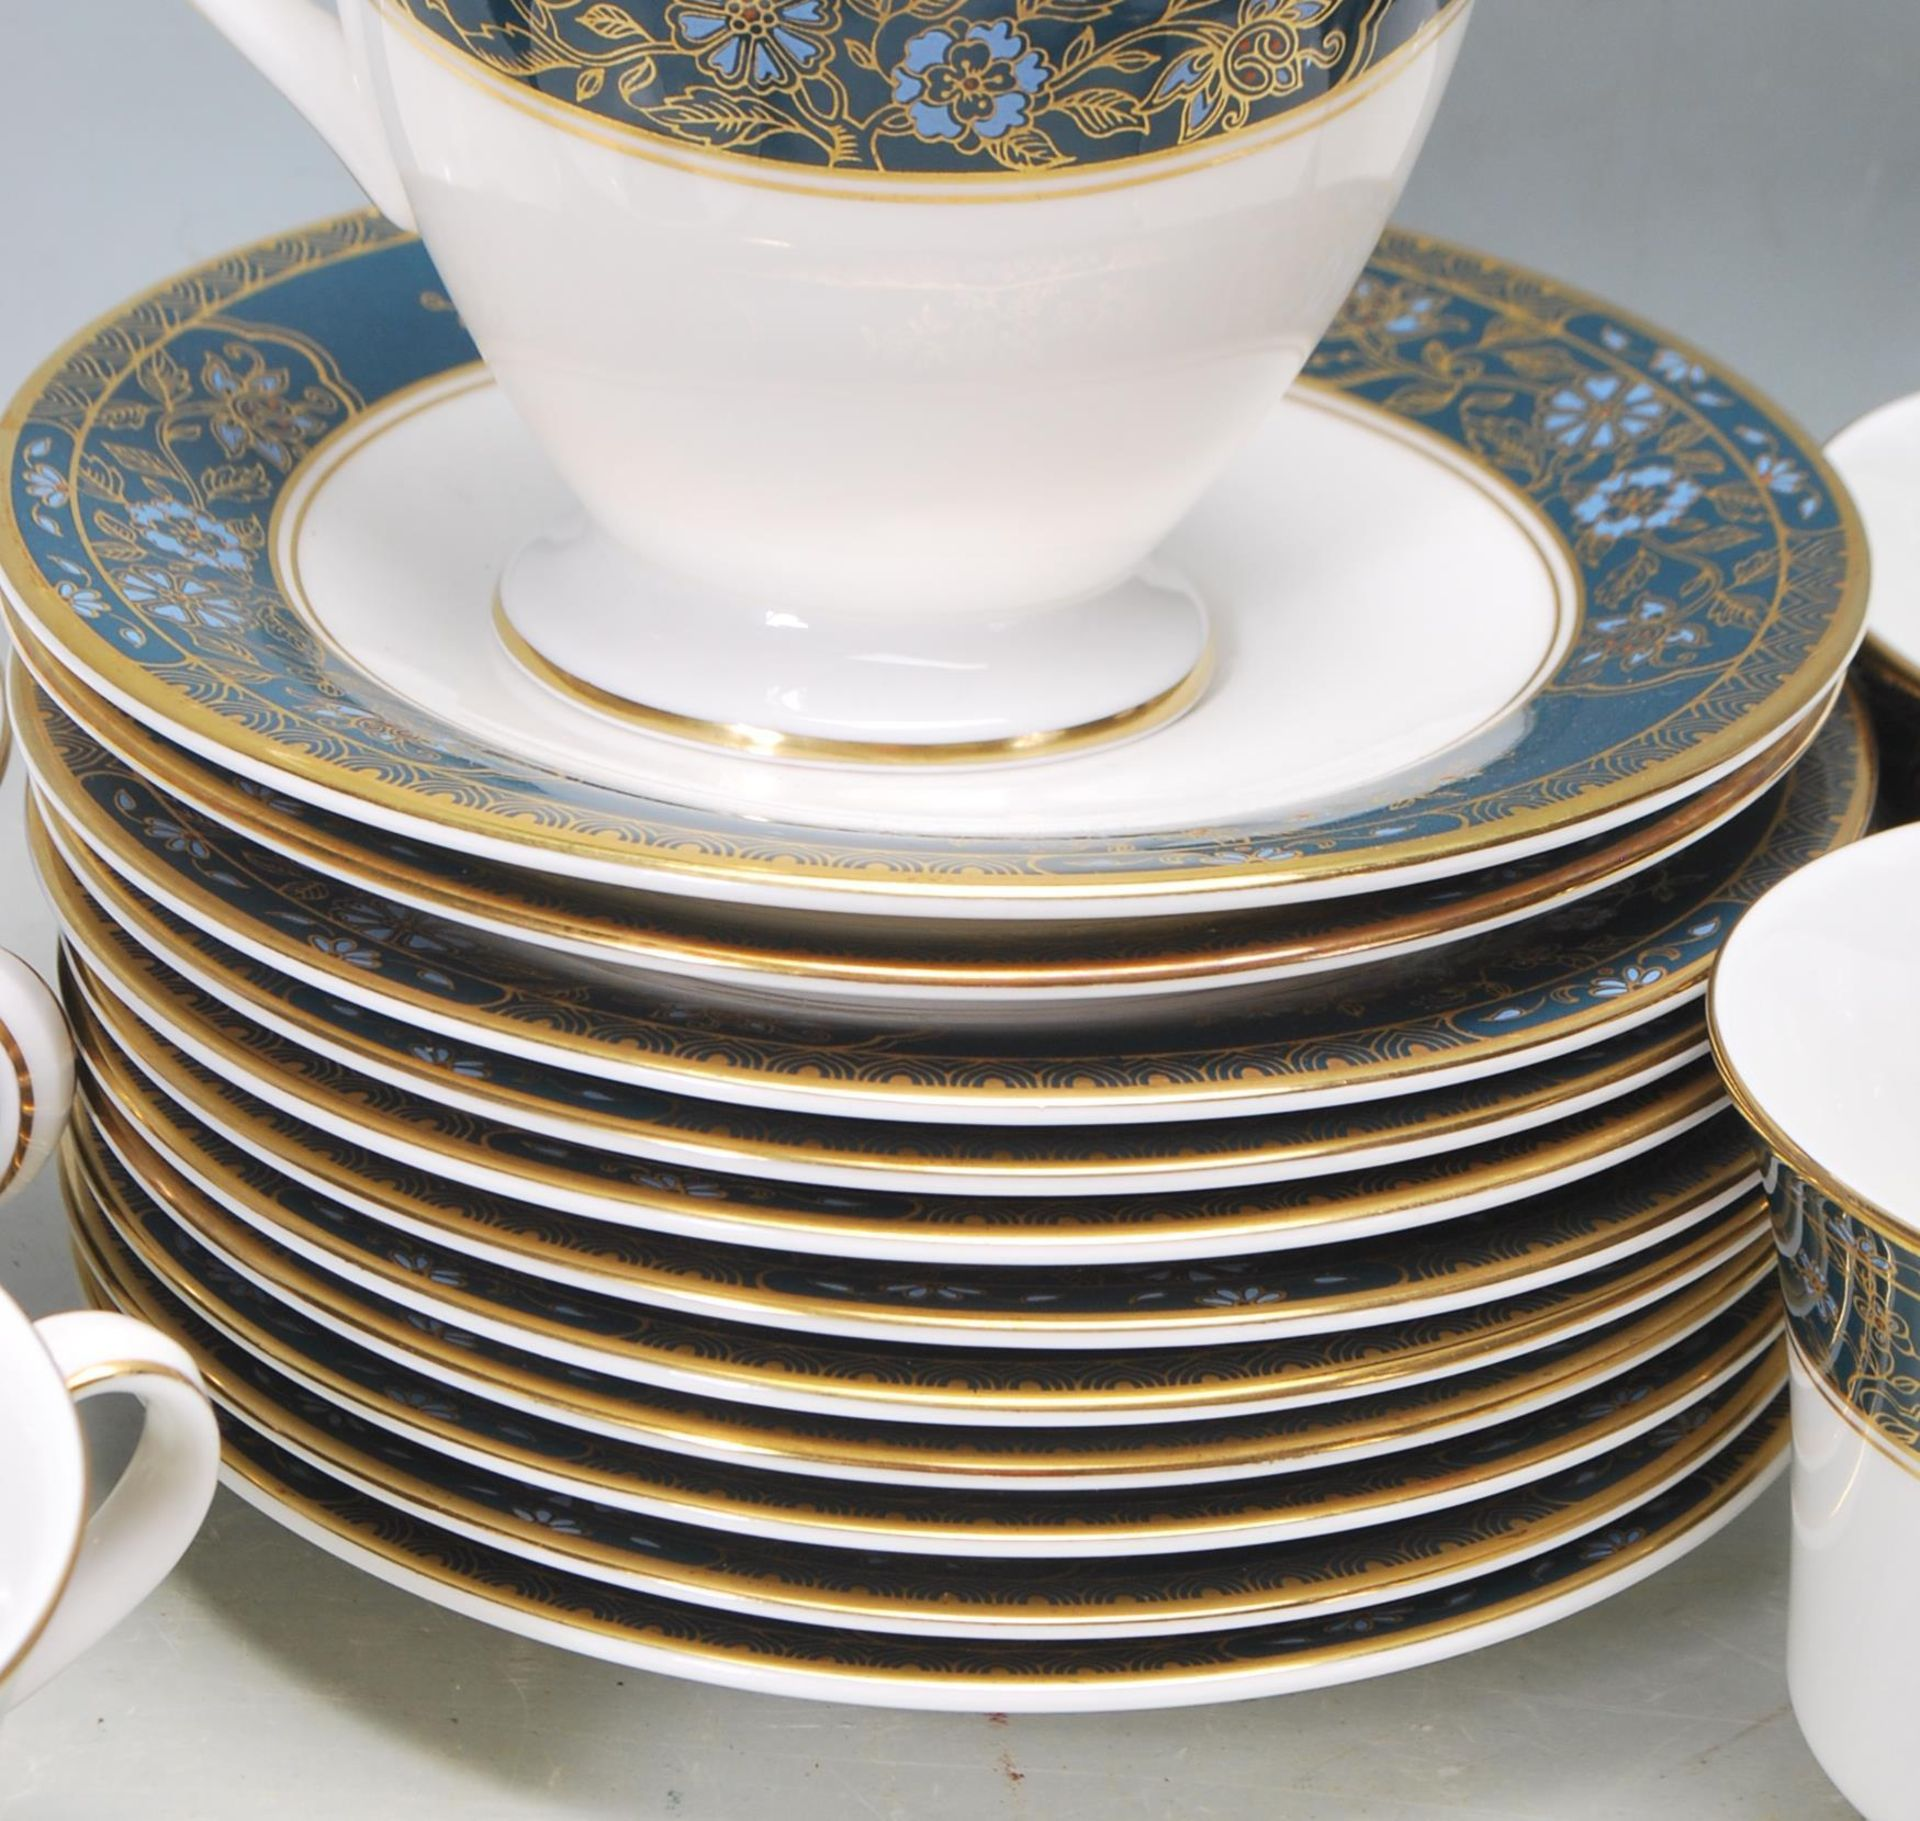 COLLECTION OF LATE 20TH CENTORUY ROYAL DOULTON FINE BONE CHINA DINNER SERVICE - Image 7 of 8